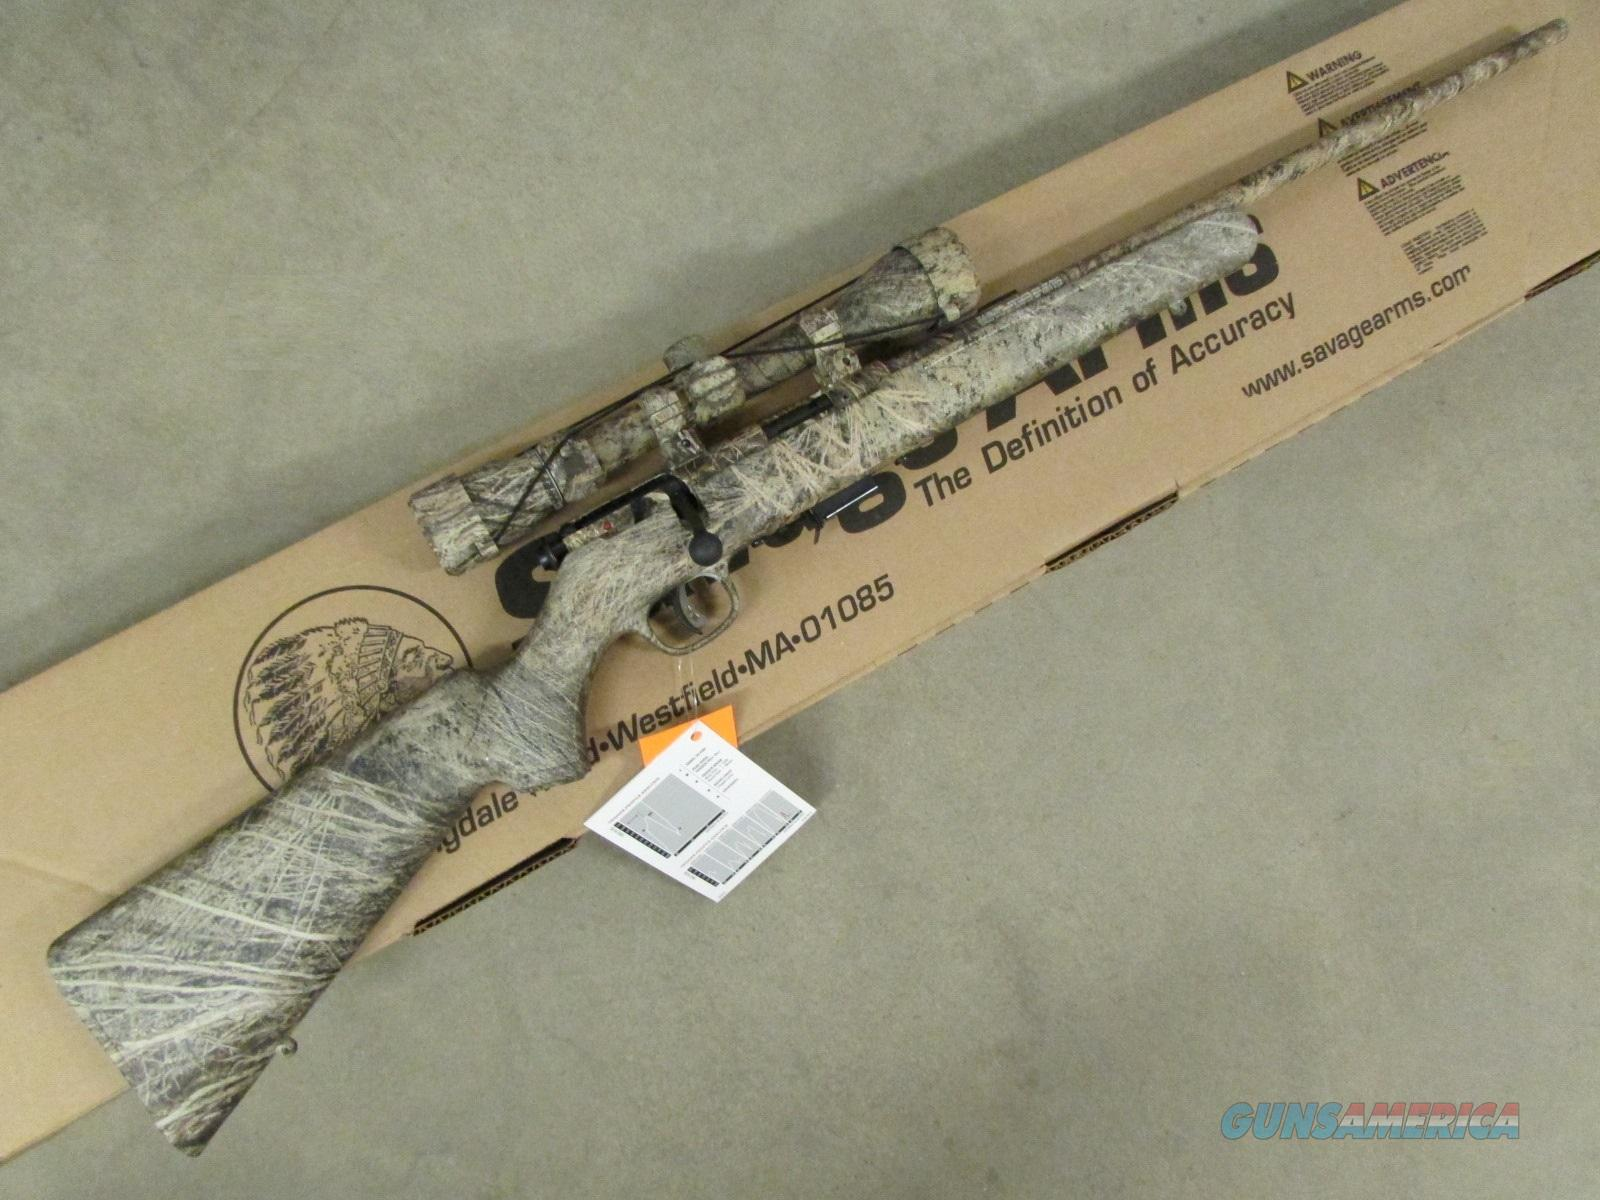 Savage Model 93 XP Camo Brush w/ 3-9x40mm Scope .22 WMR 90755  Guns > Rifles > Savage Rifles > Accutrigger Models > Sporting